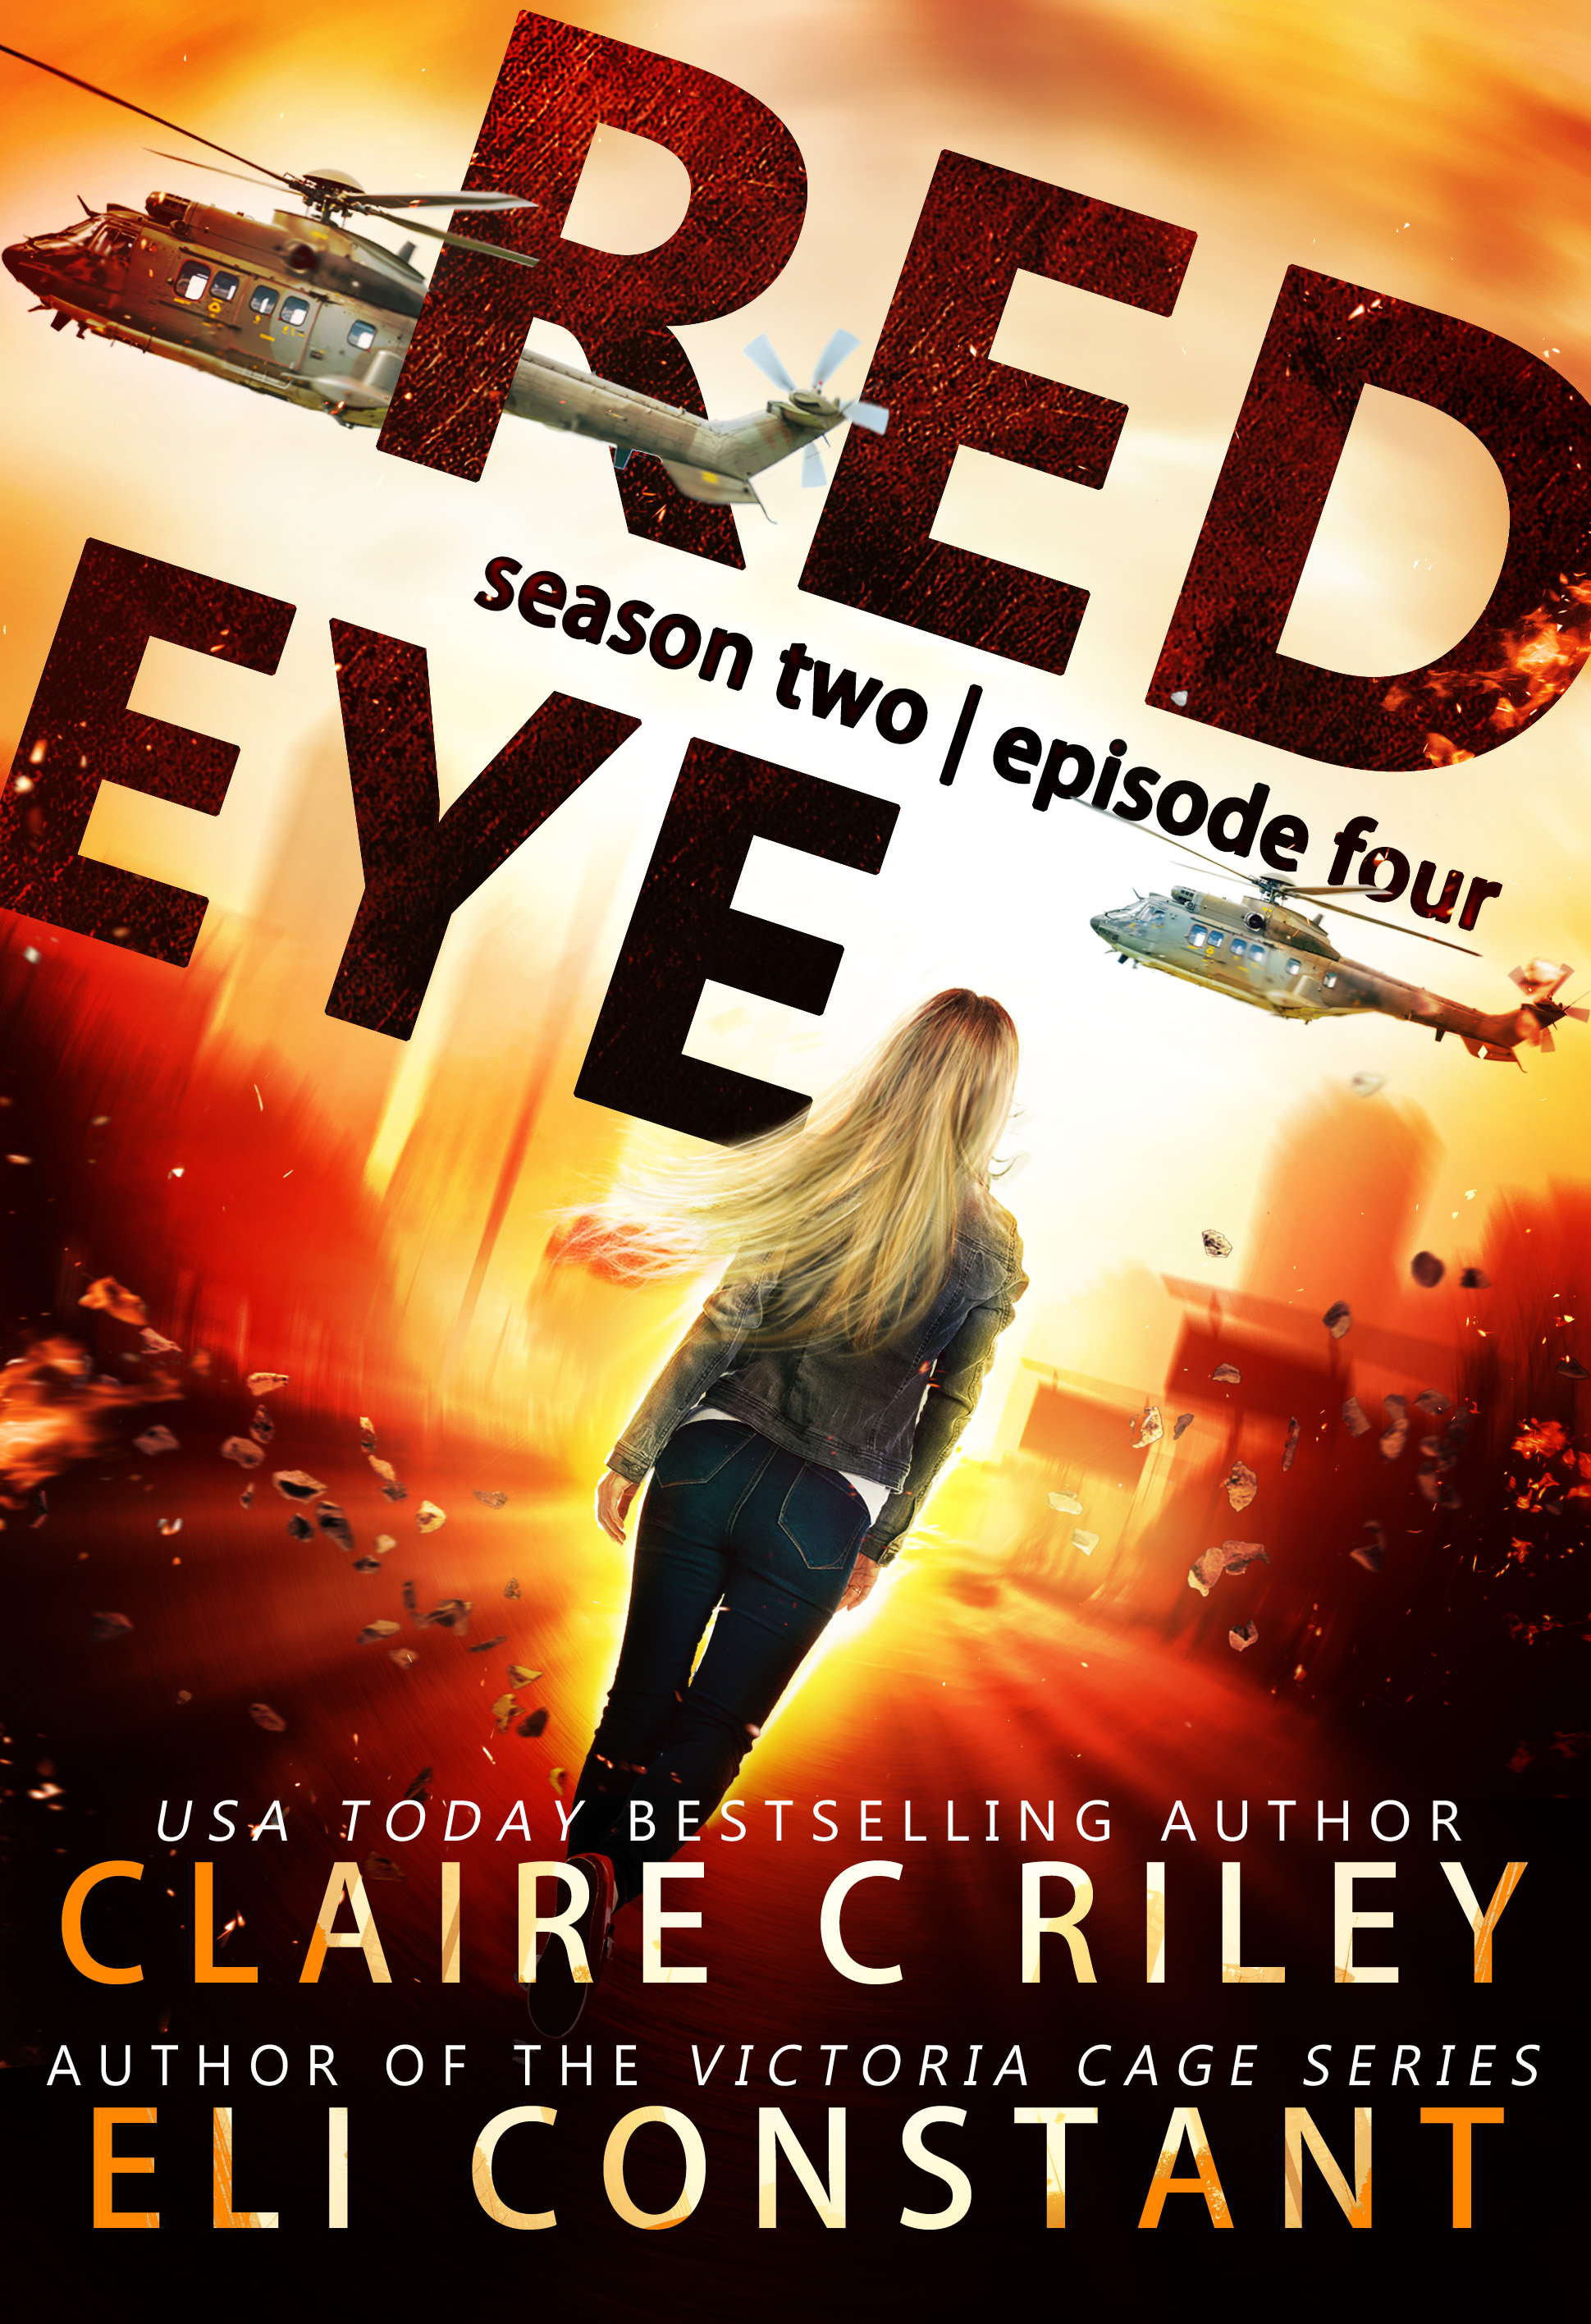 Red Eye The Armageddon Series, Season 2, Episode 4